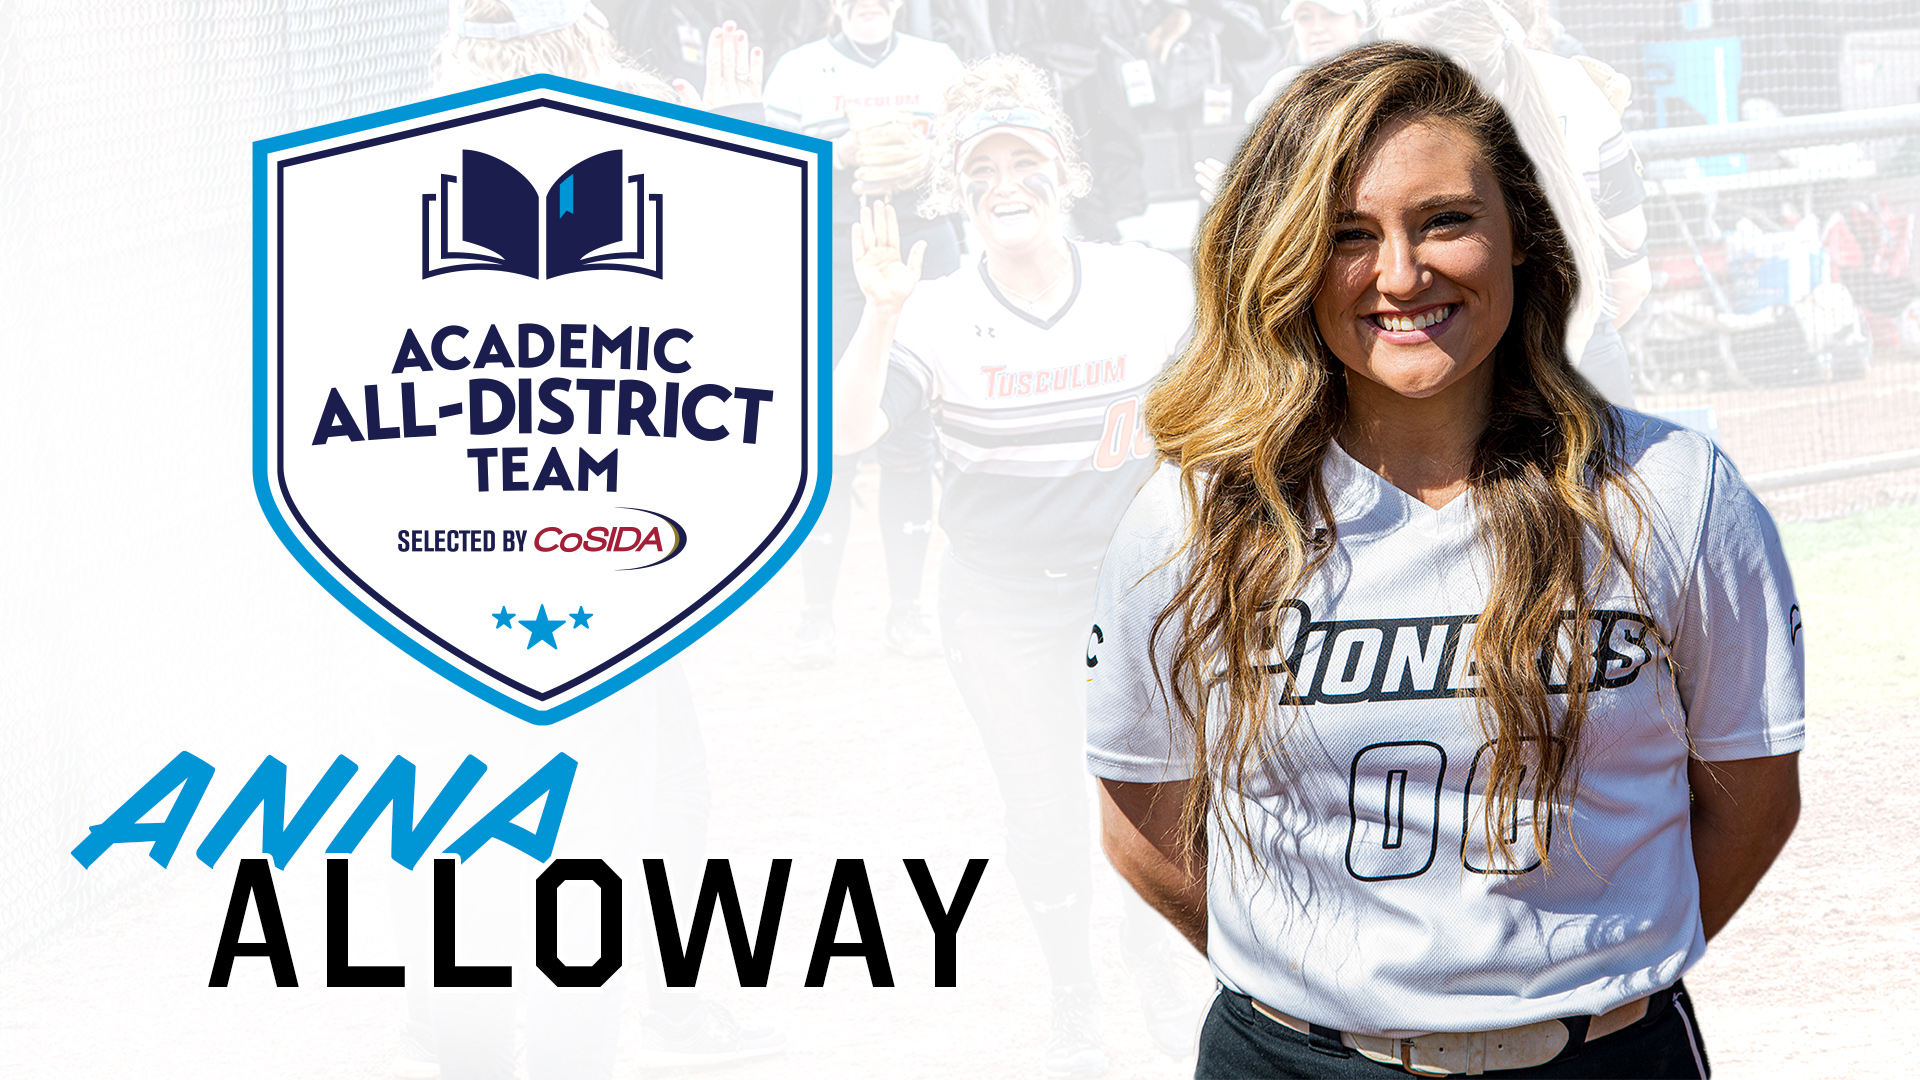 Alloway earns Academic All-District honors